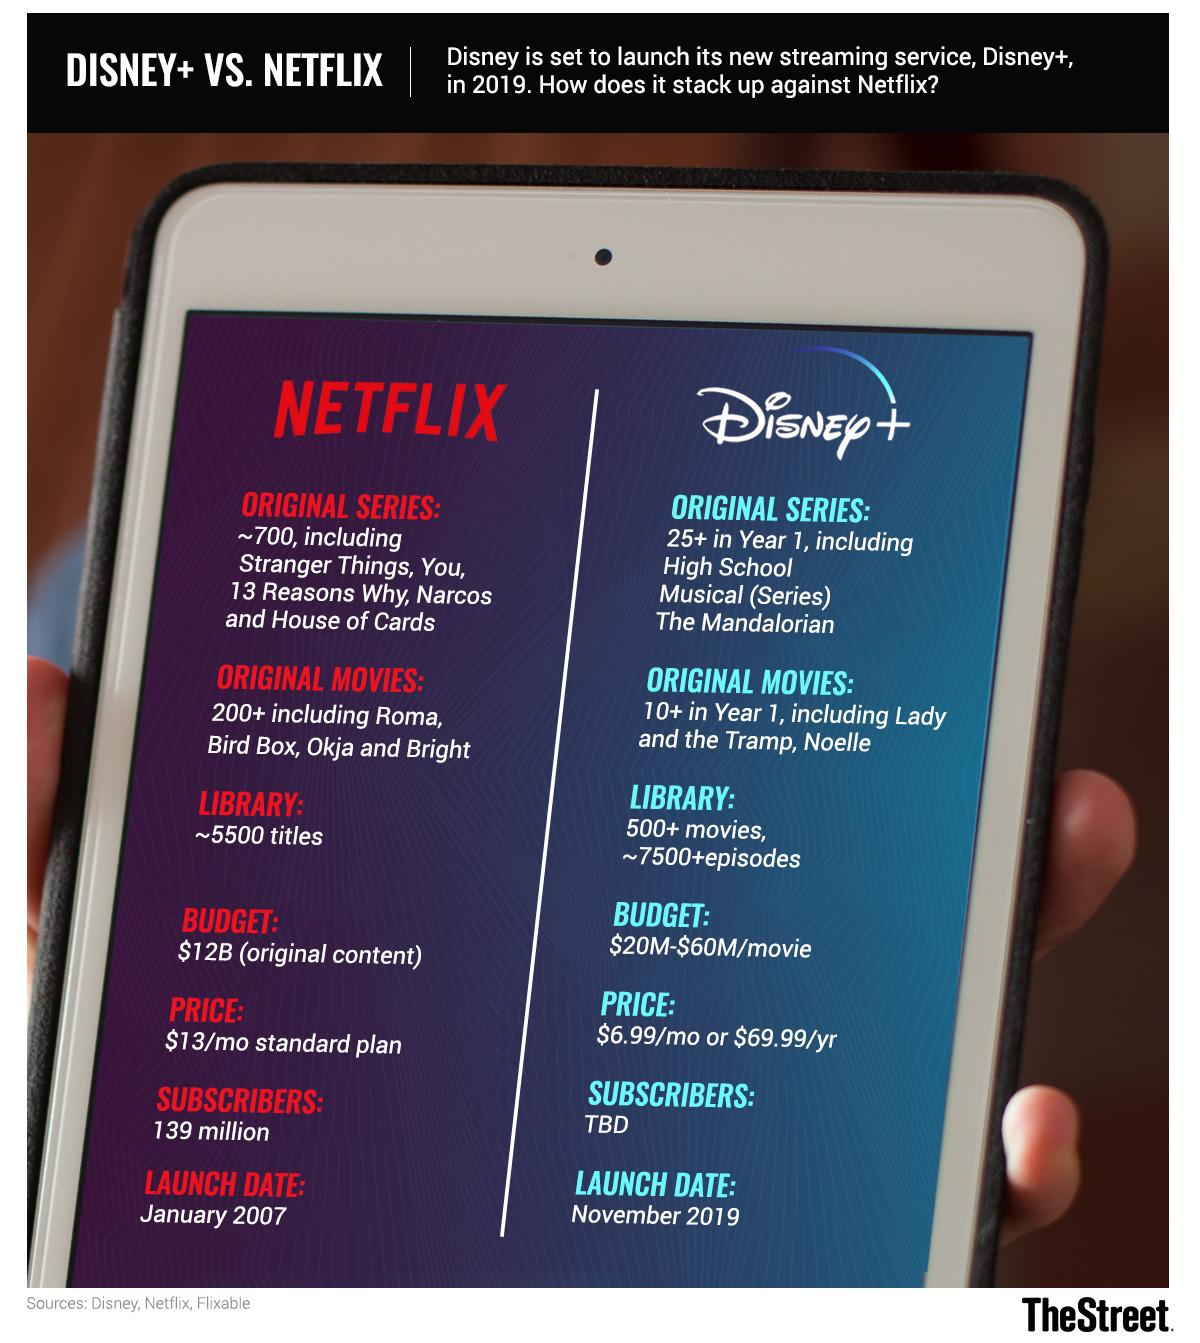 Disney vs  Netflix: The Streaming Video Battle Is Officially